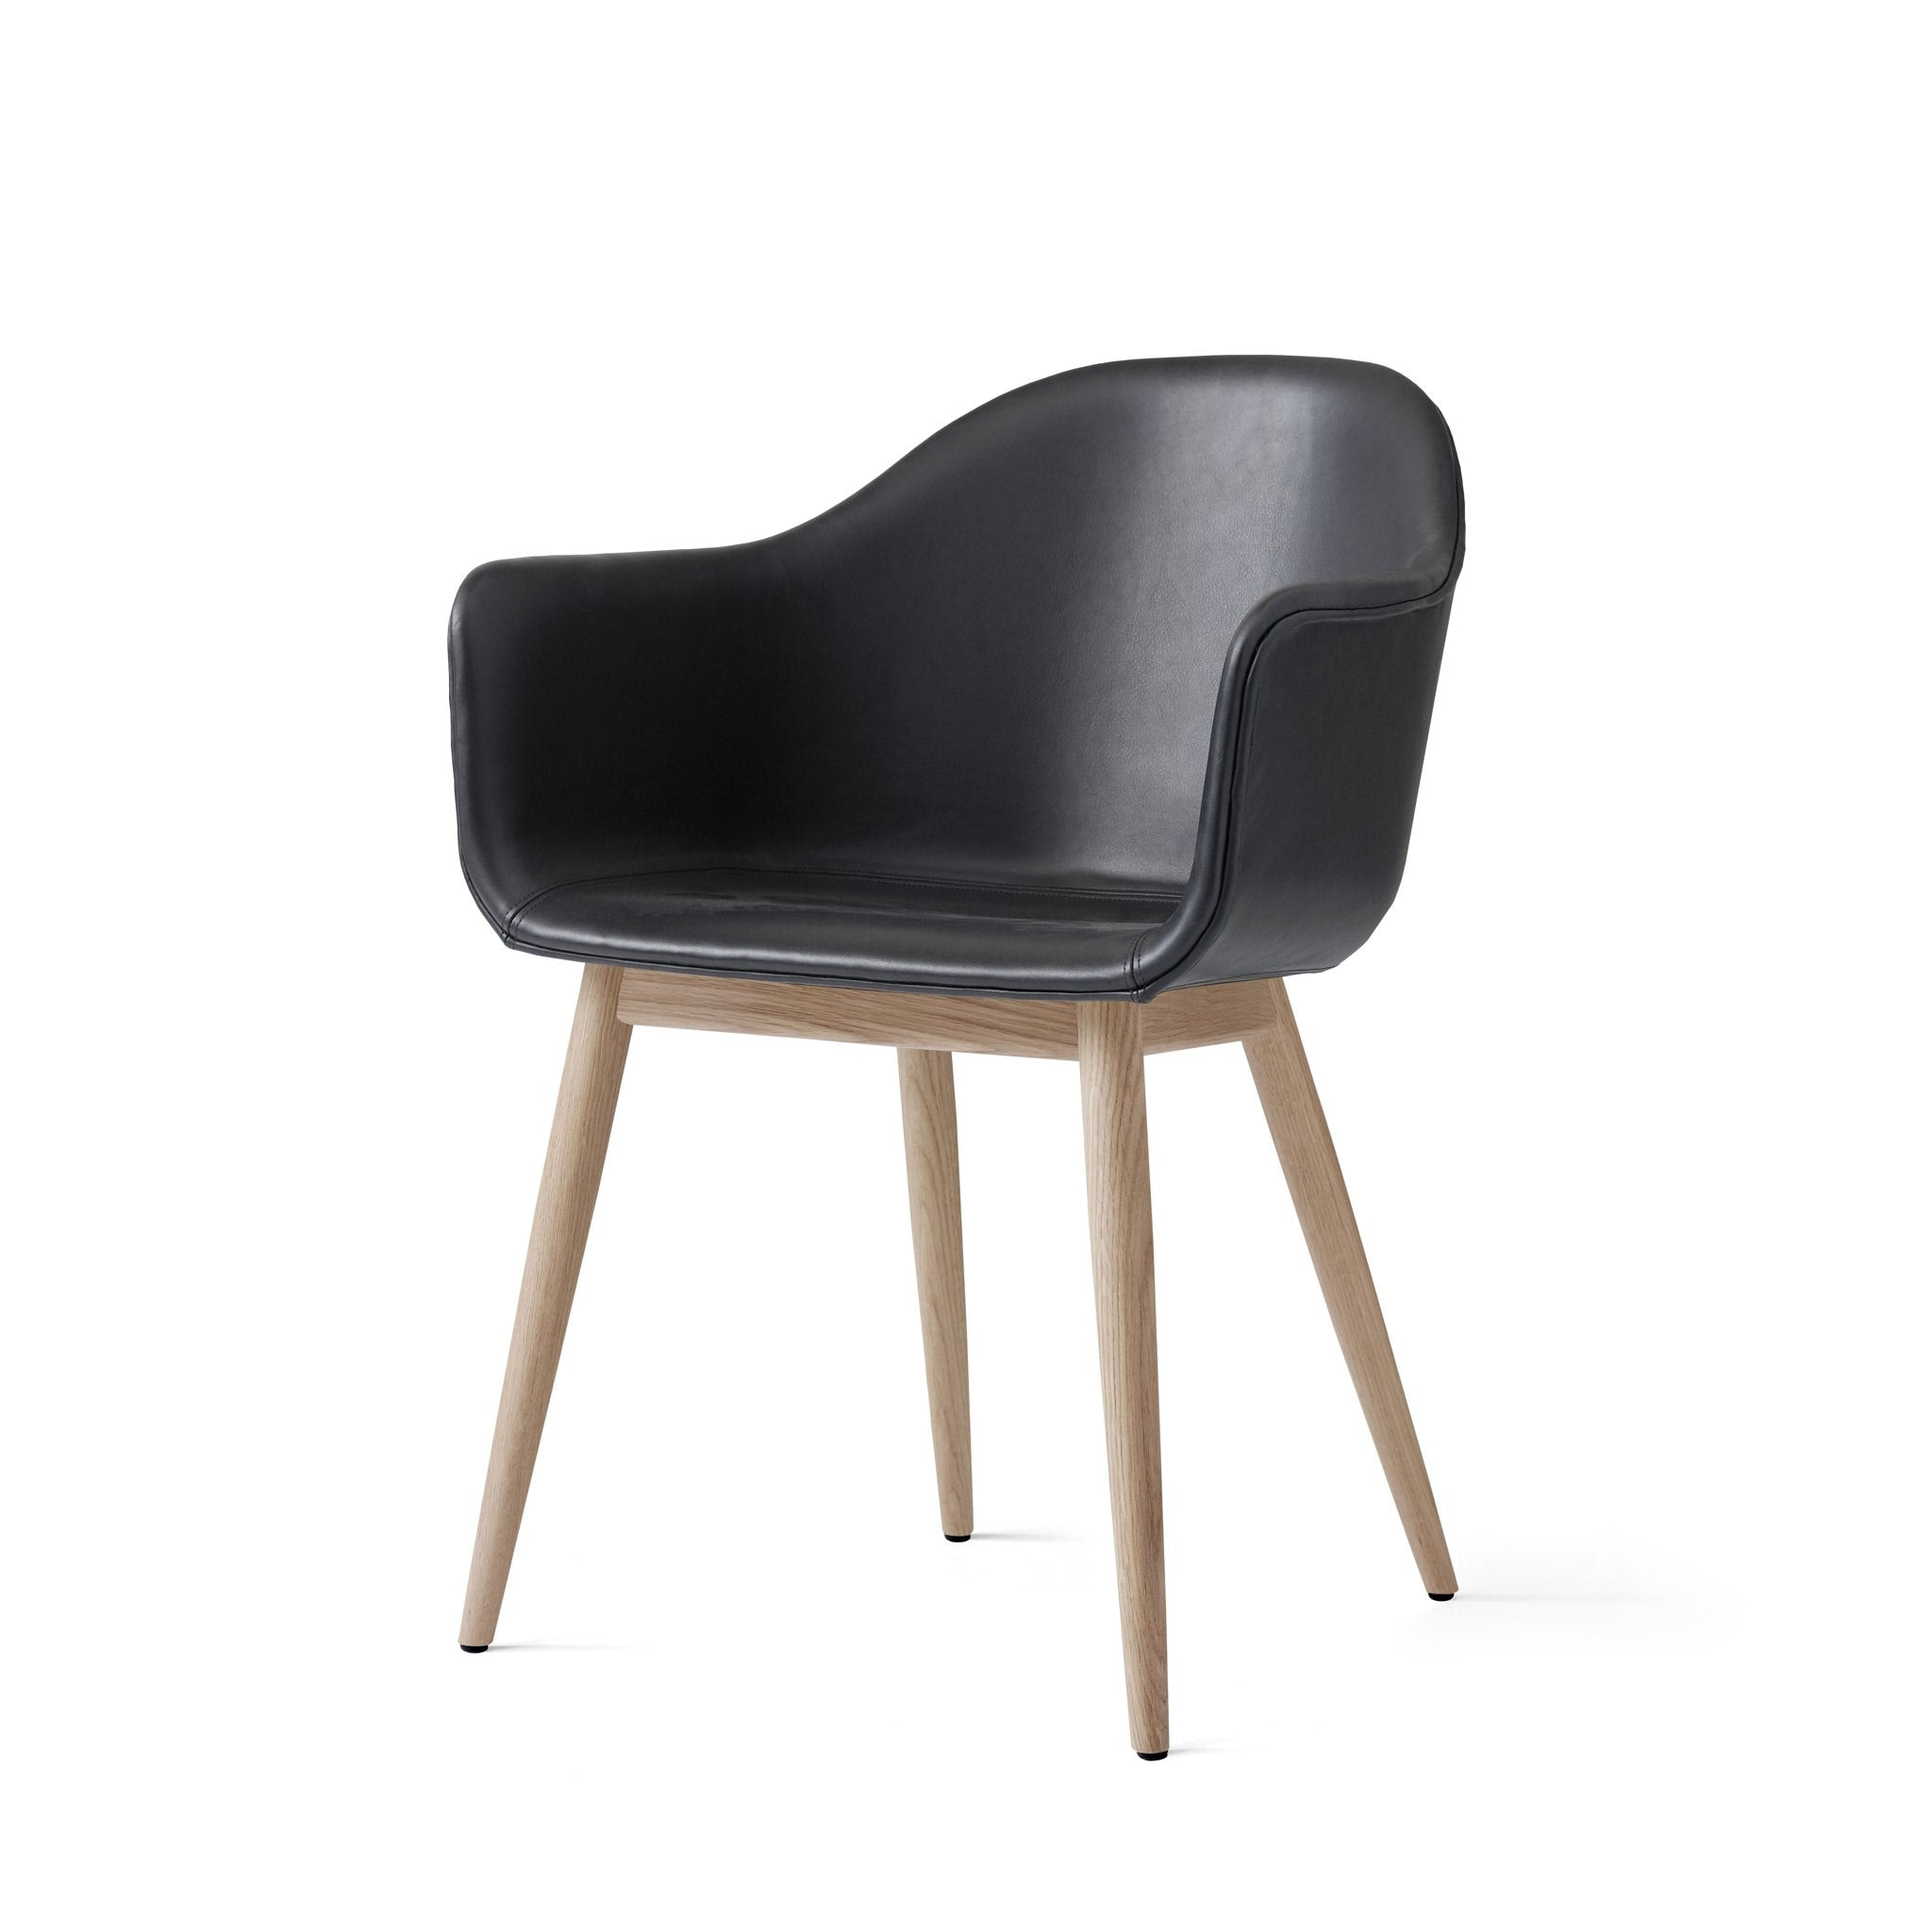 Harbour Chair Upholstered with Wood Base by Menu